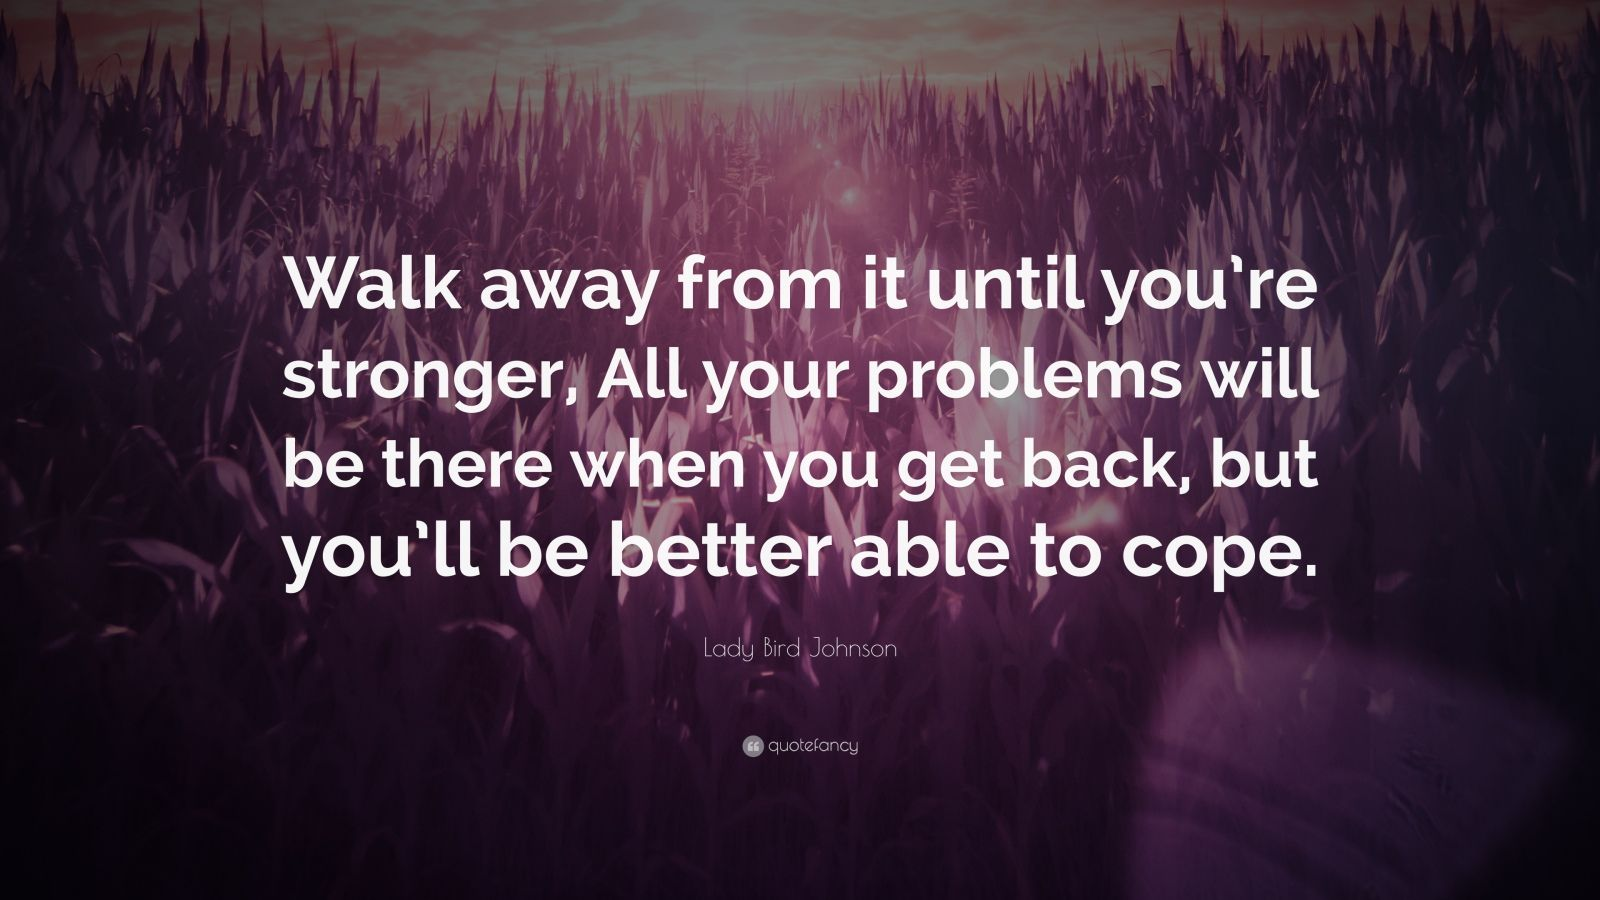 """Lady Bird Johnson Quote: """"Walk away from it until you're stronger, All your problems will be there when you get back, but you'll be better able to cope."""""""